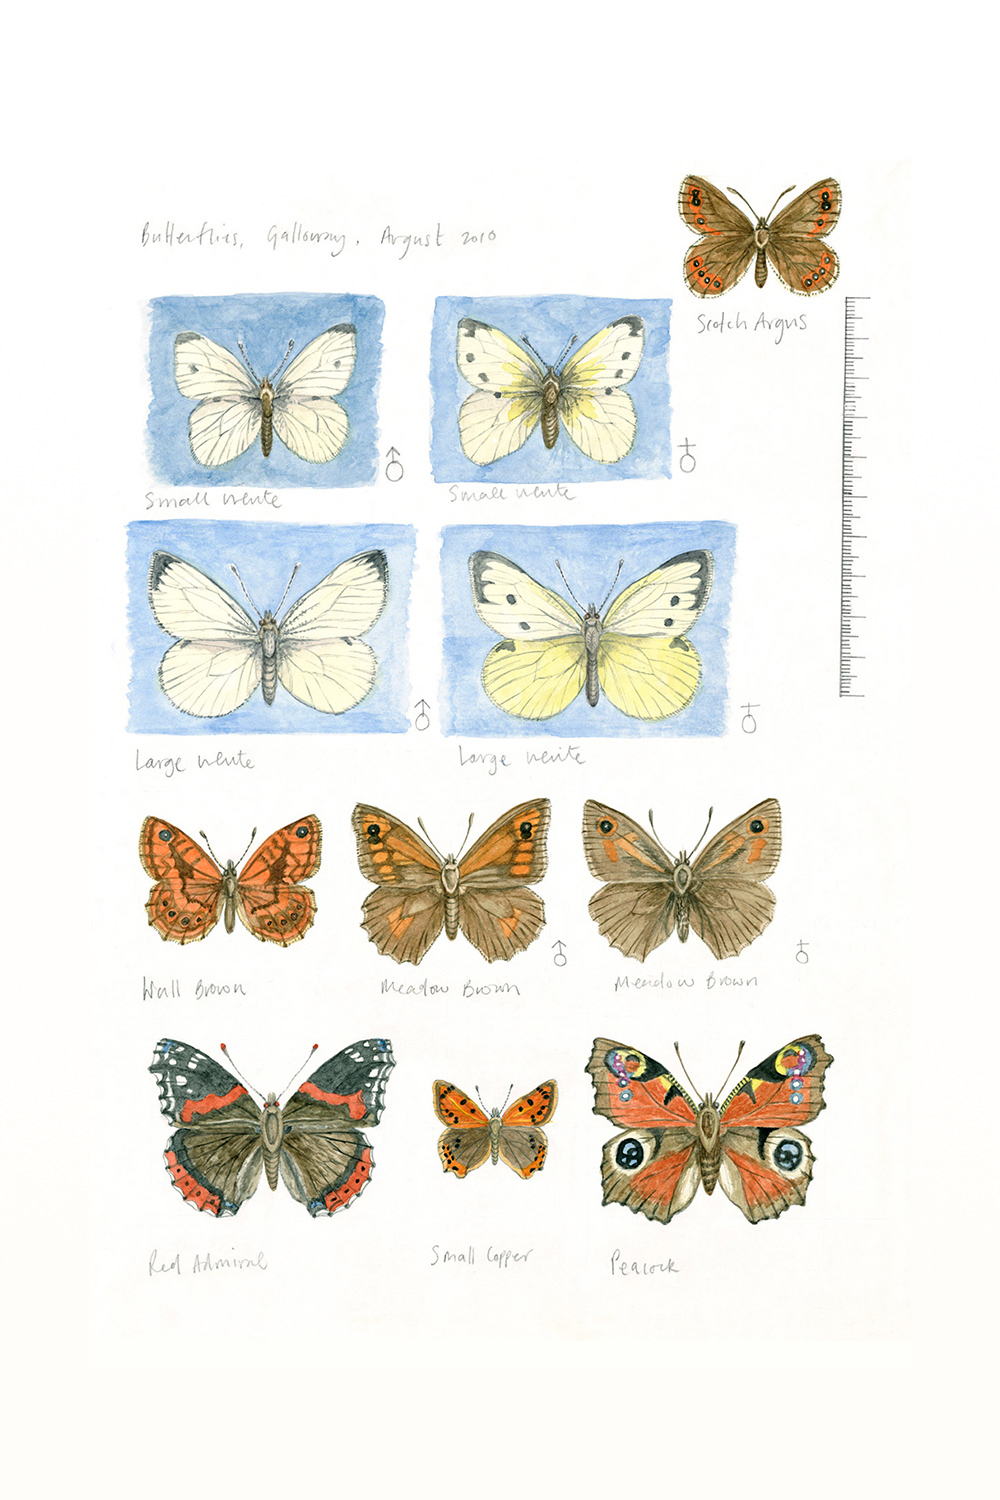 Butterflies, Galloway Estate (sketchbook page), 2010, watercolour and pencil on paper